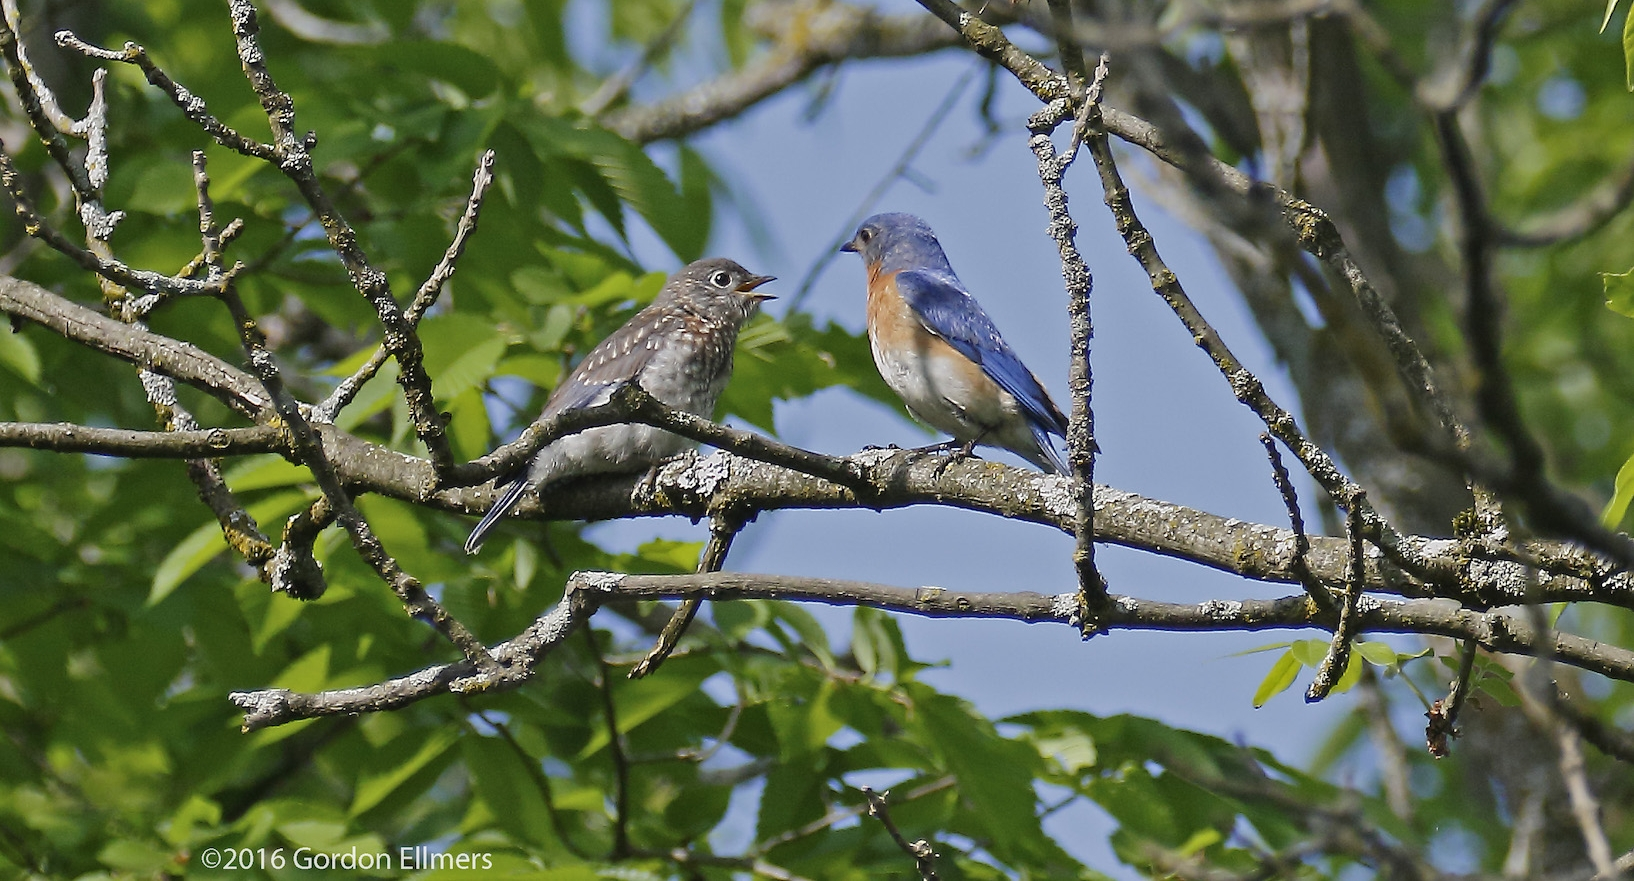 BLUEBIRDS (NEW YORKS'S STATE BIRD), LIKE THIS ADULT AND FLEDGLING, ARE BECOMING YEAR-ROUND RESIDENTS HERE, POSSIBLY DUE TO CLIMATE CHANGE. SARATOGA NATIONAL HISTORIC PARK HAS PLACED 78 TRAIL BOXES WHERE THEY CAN SAFELY NEST. IMAGE: GORDON ELLMERS.